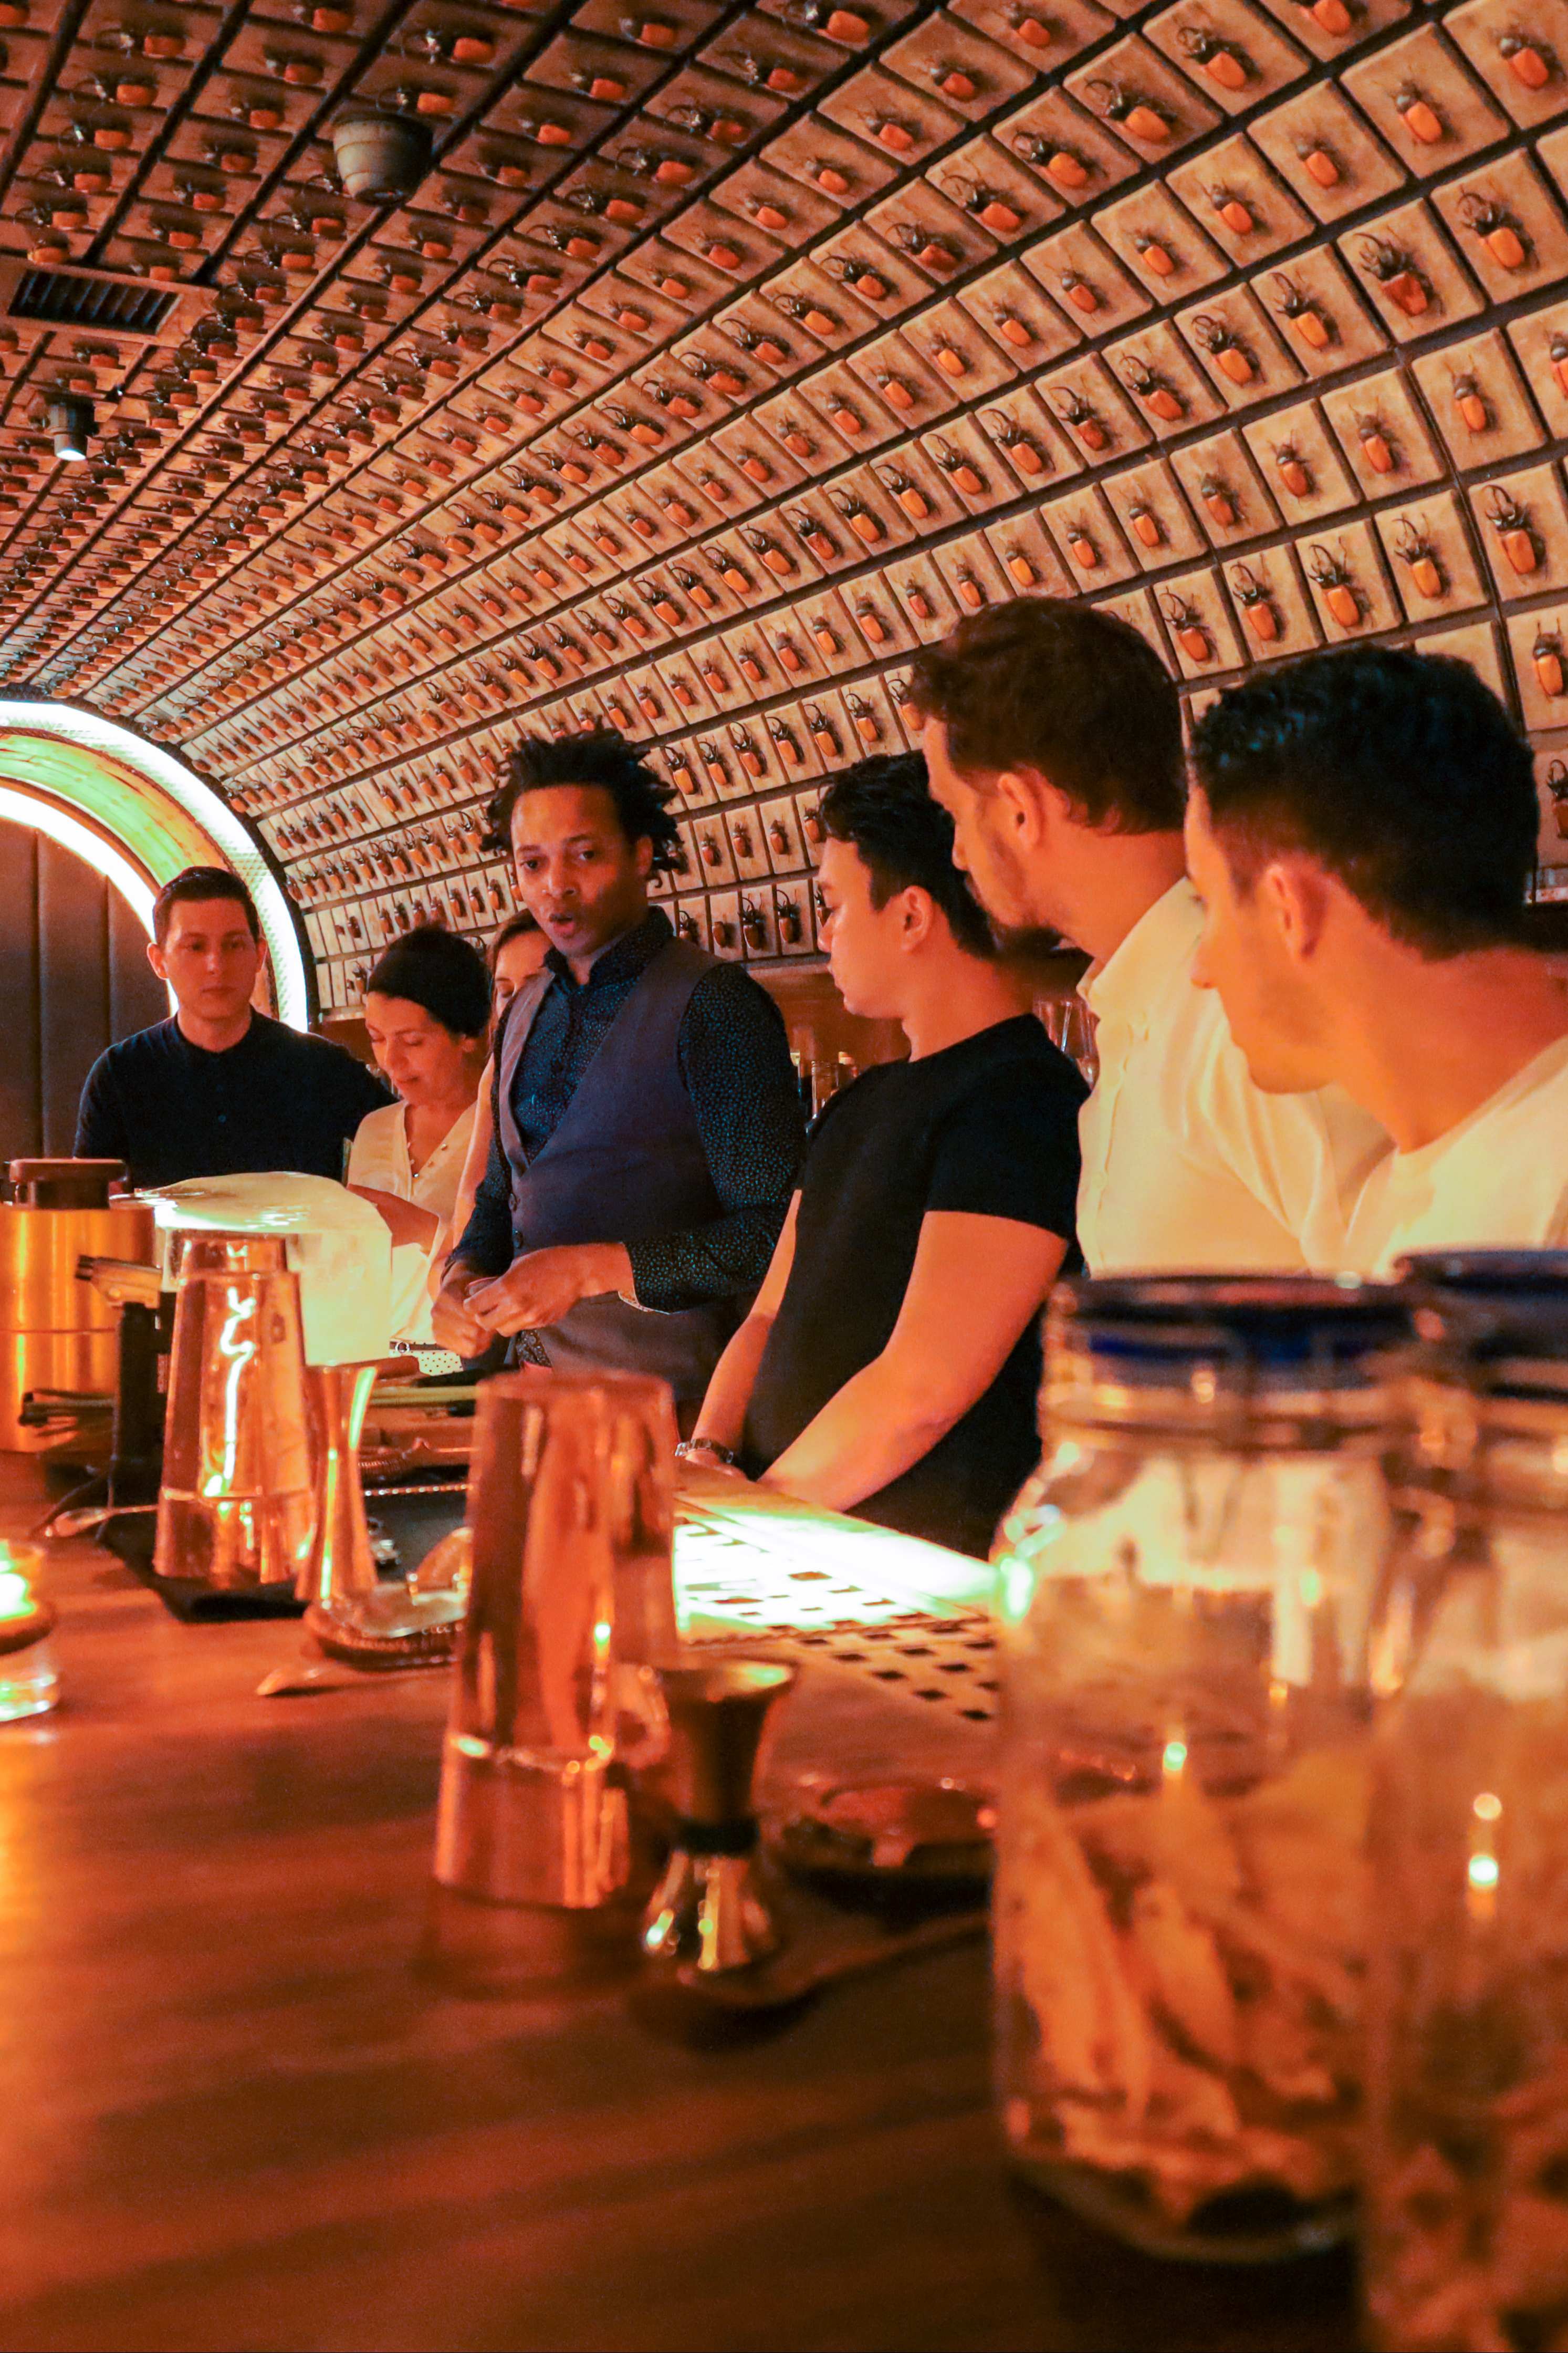 Step behind the bar with your new moves